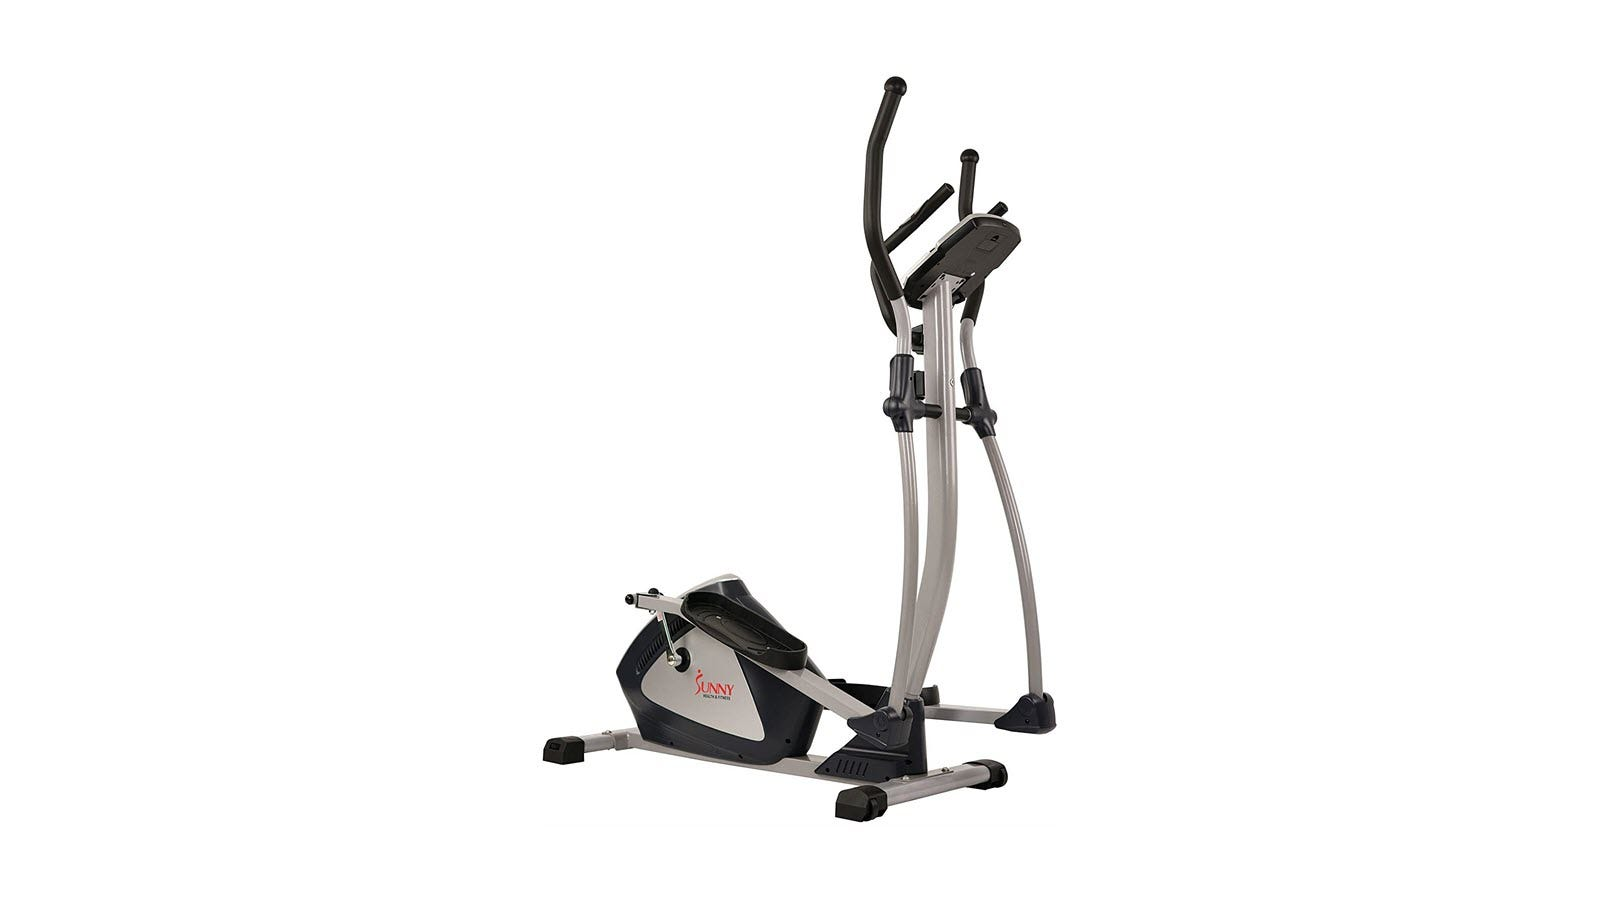 The Sunny Health & Fitness Magnetic Elliptical Trainer.